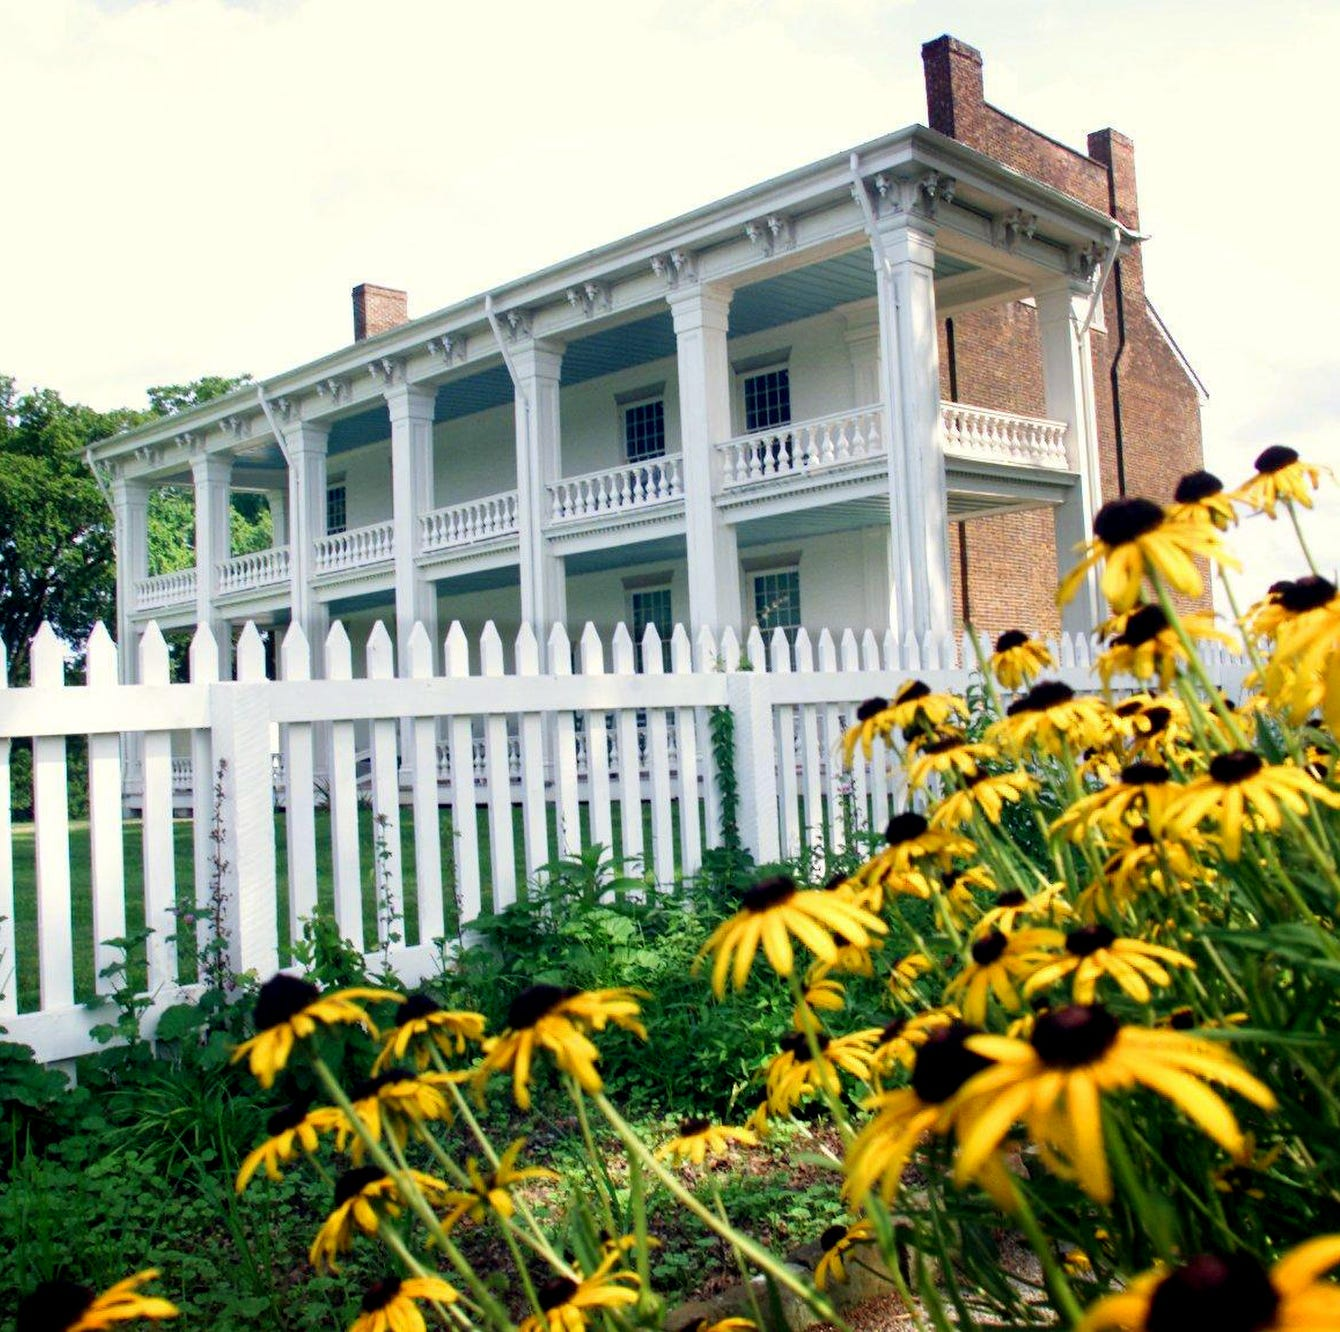 Battle of Franklin home tours make a great day trip for history buffs